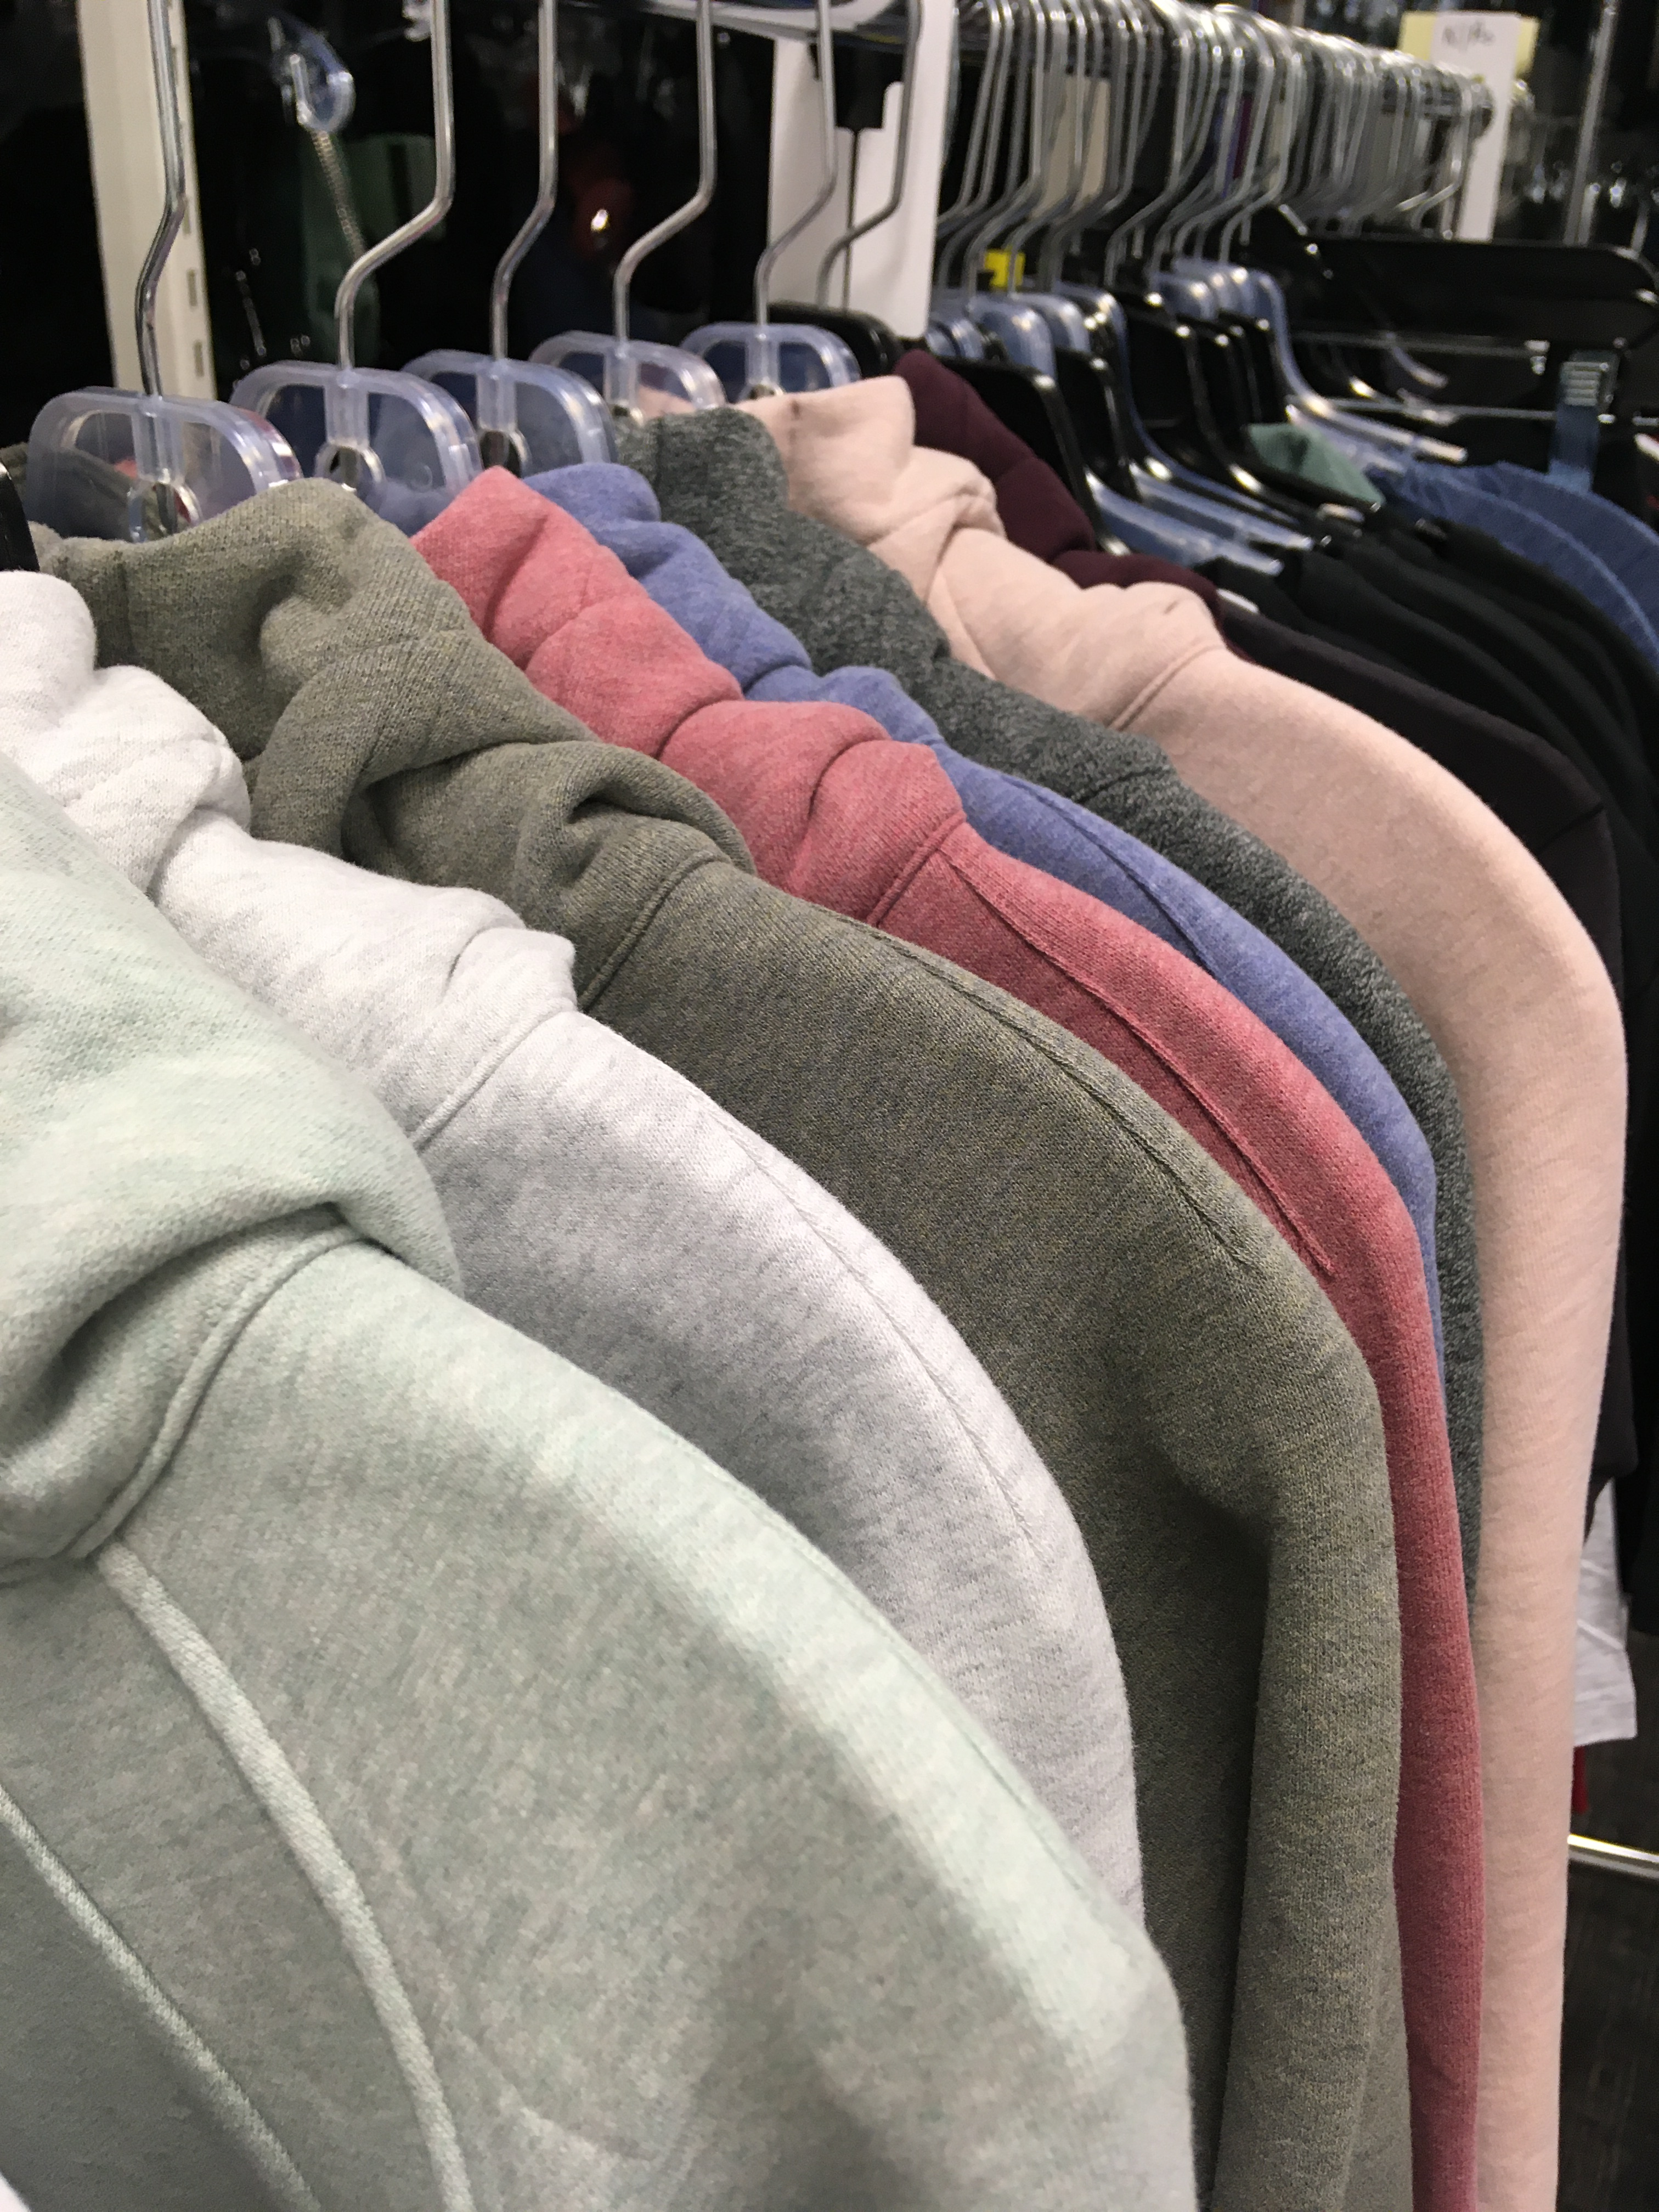 View o f hoodies in pastel and gray shades hanging on a rack.